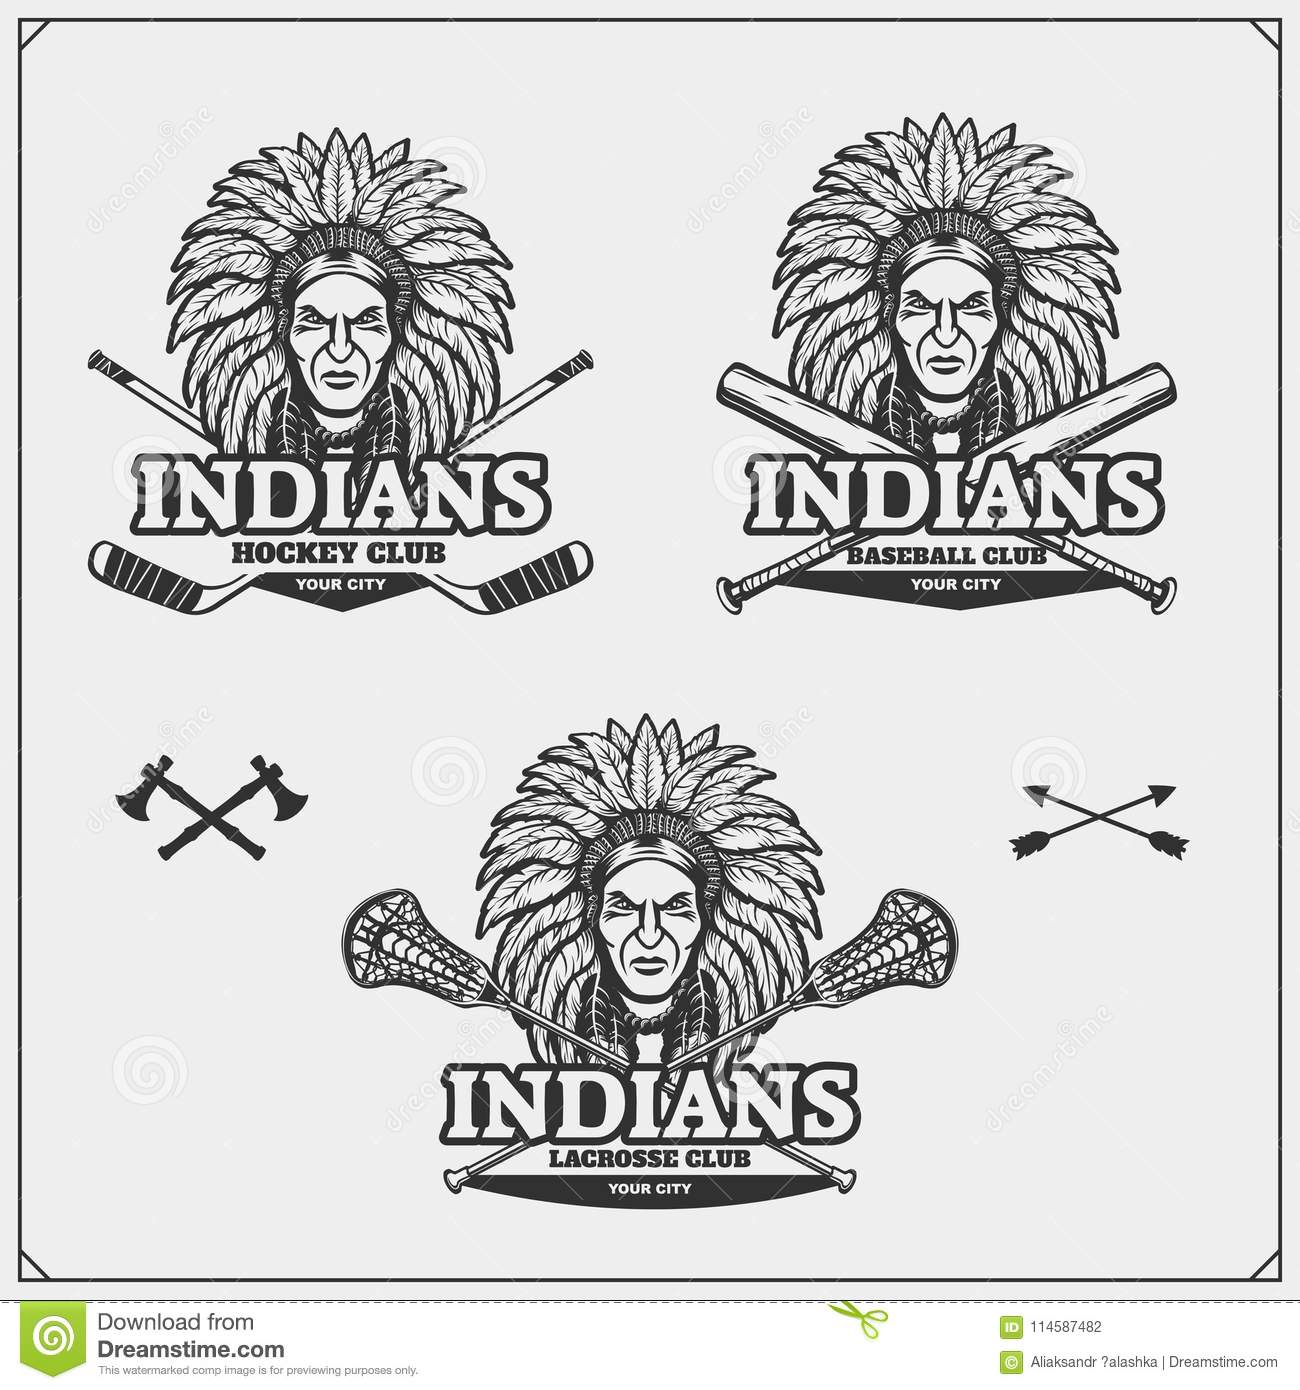 lacrosse baseball and hockey logos and labels sport club emblems rh dreamstime com Indiana Hockey Logo Indiana Hockey Logo